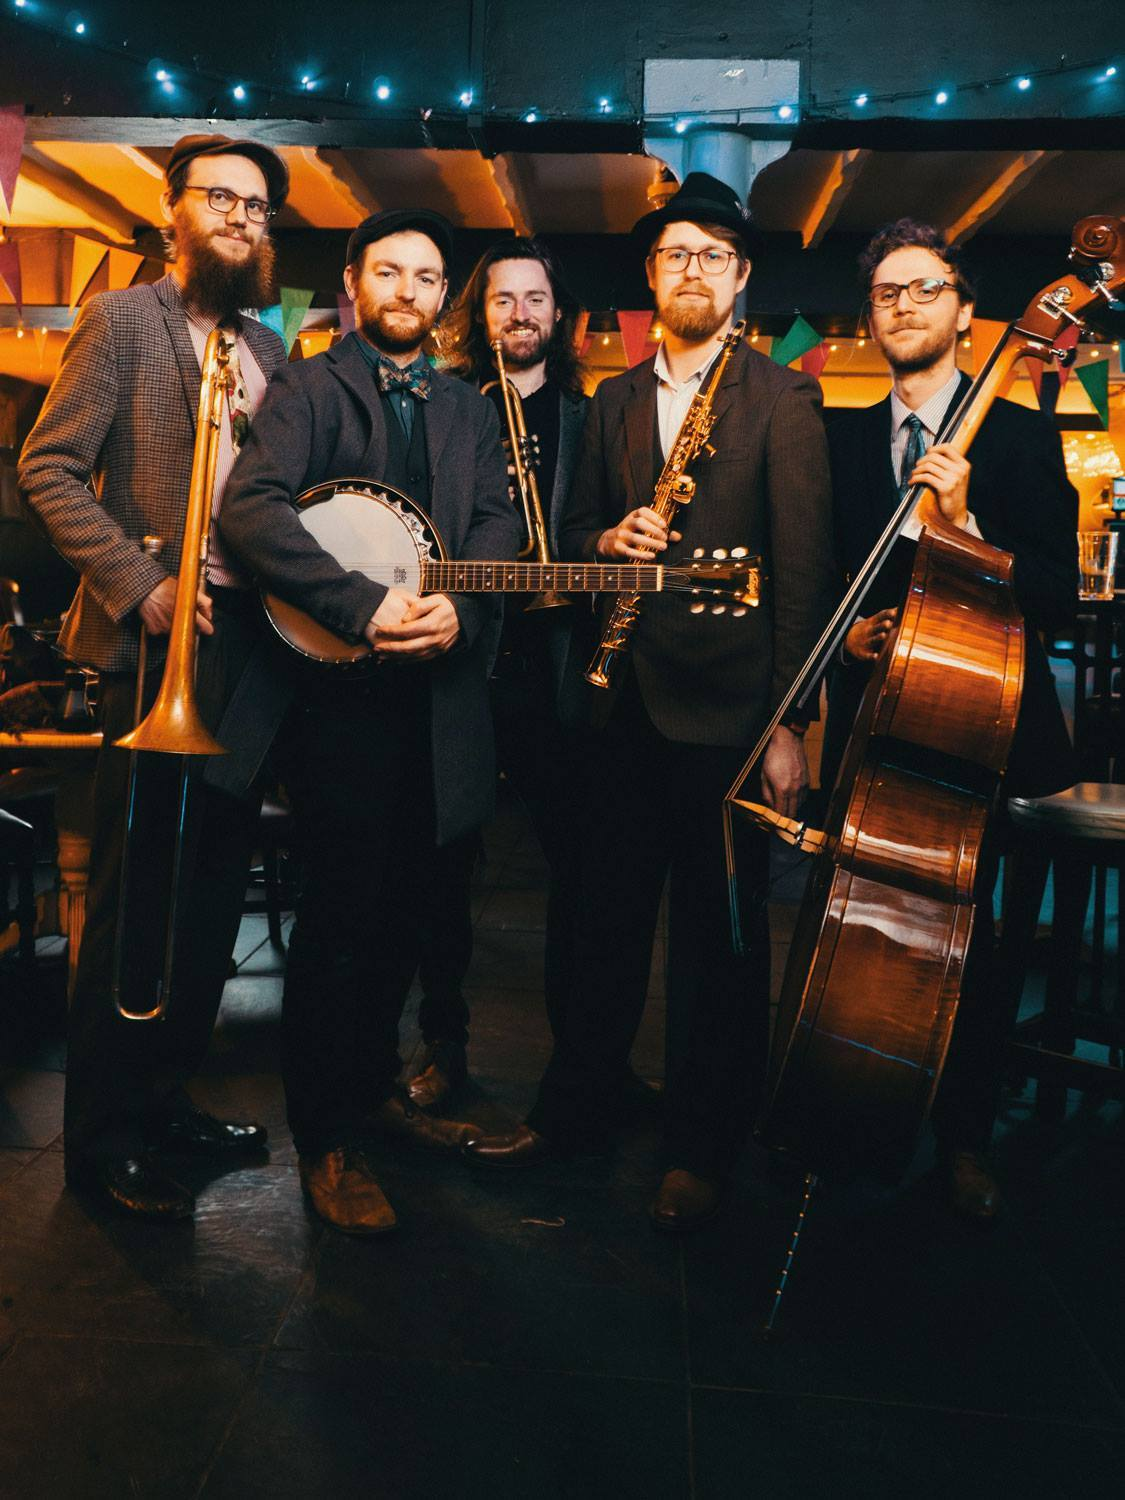 Jazz club hosts raw energy and excitement of red hot band